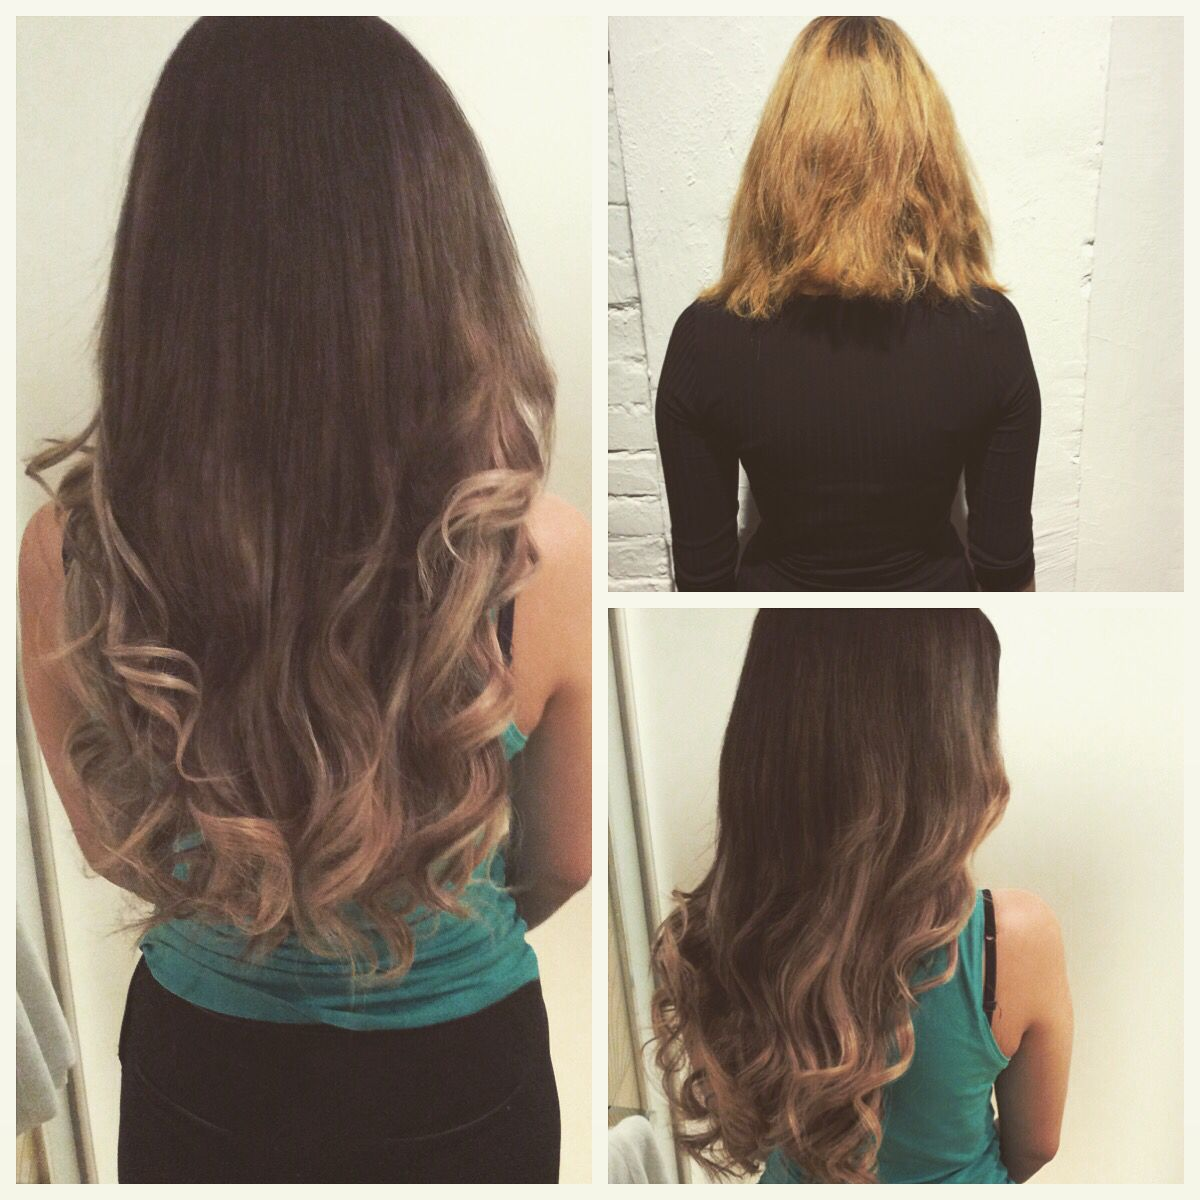 Hair from Short to long with a Brondebaleyage